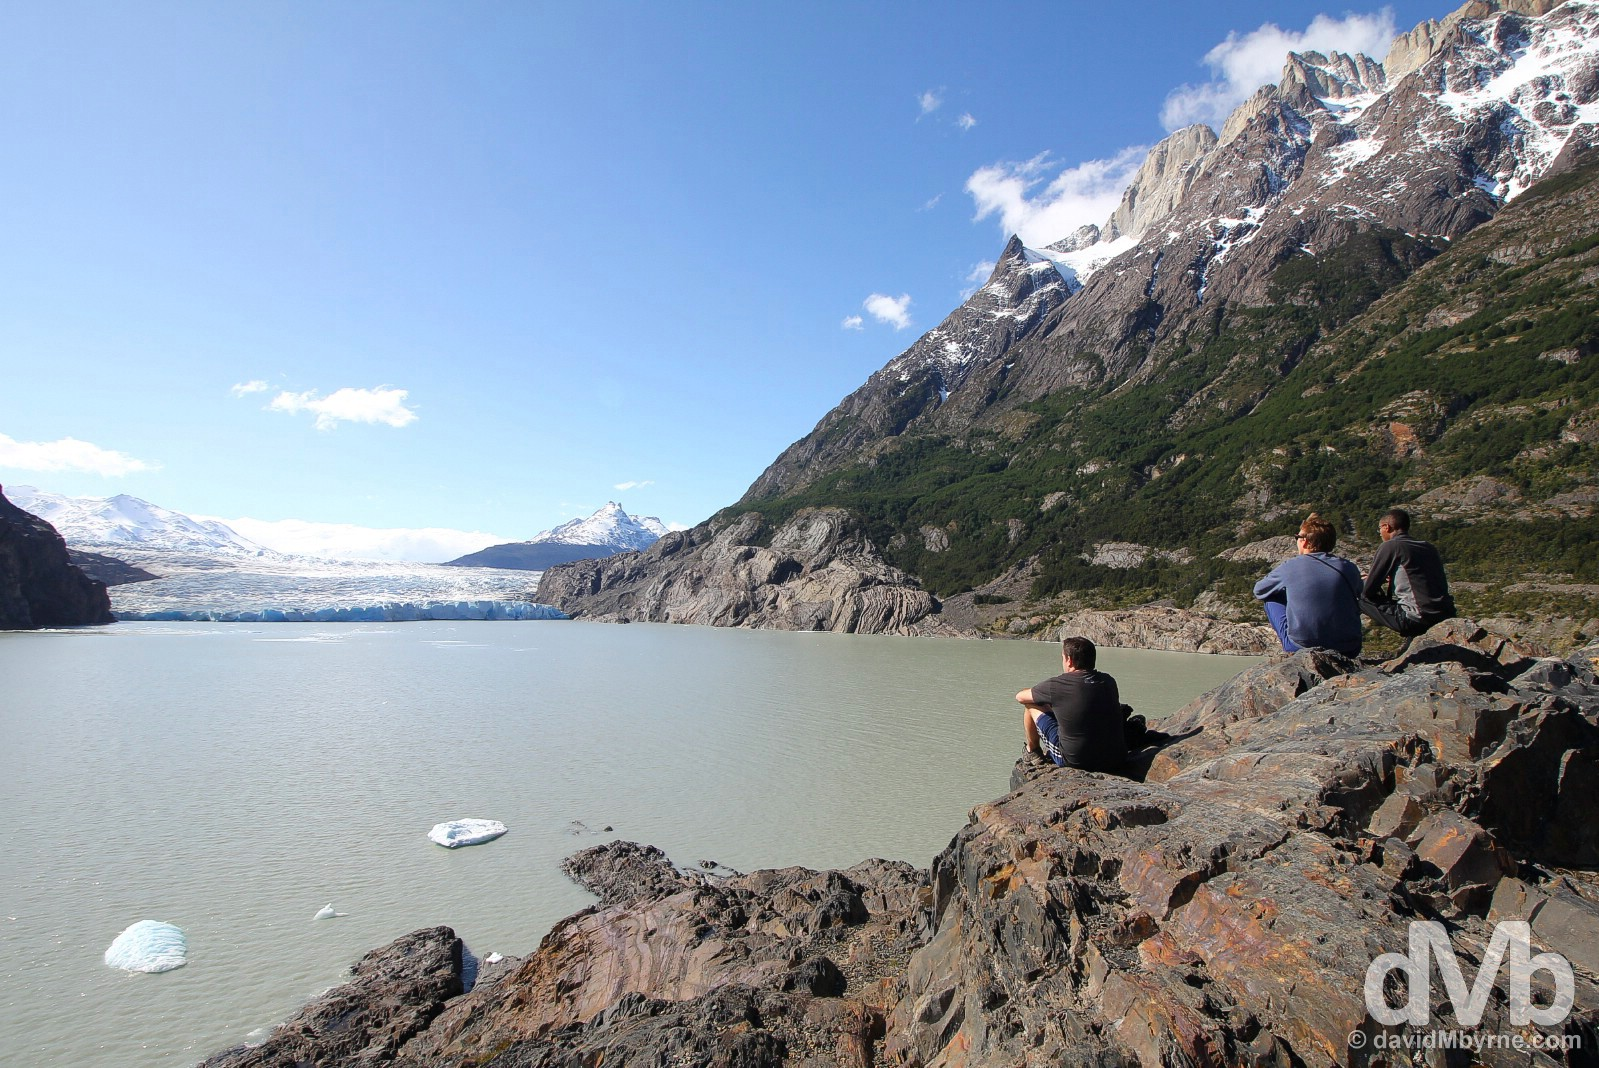 Admiring the terminal face of Glaciar (Glacier) Grey by the edge of Lago (Lake) Grey in Torres del Paine National Park, Chile. November 21, 2015.